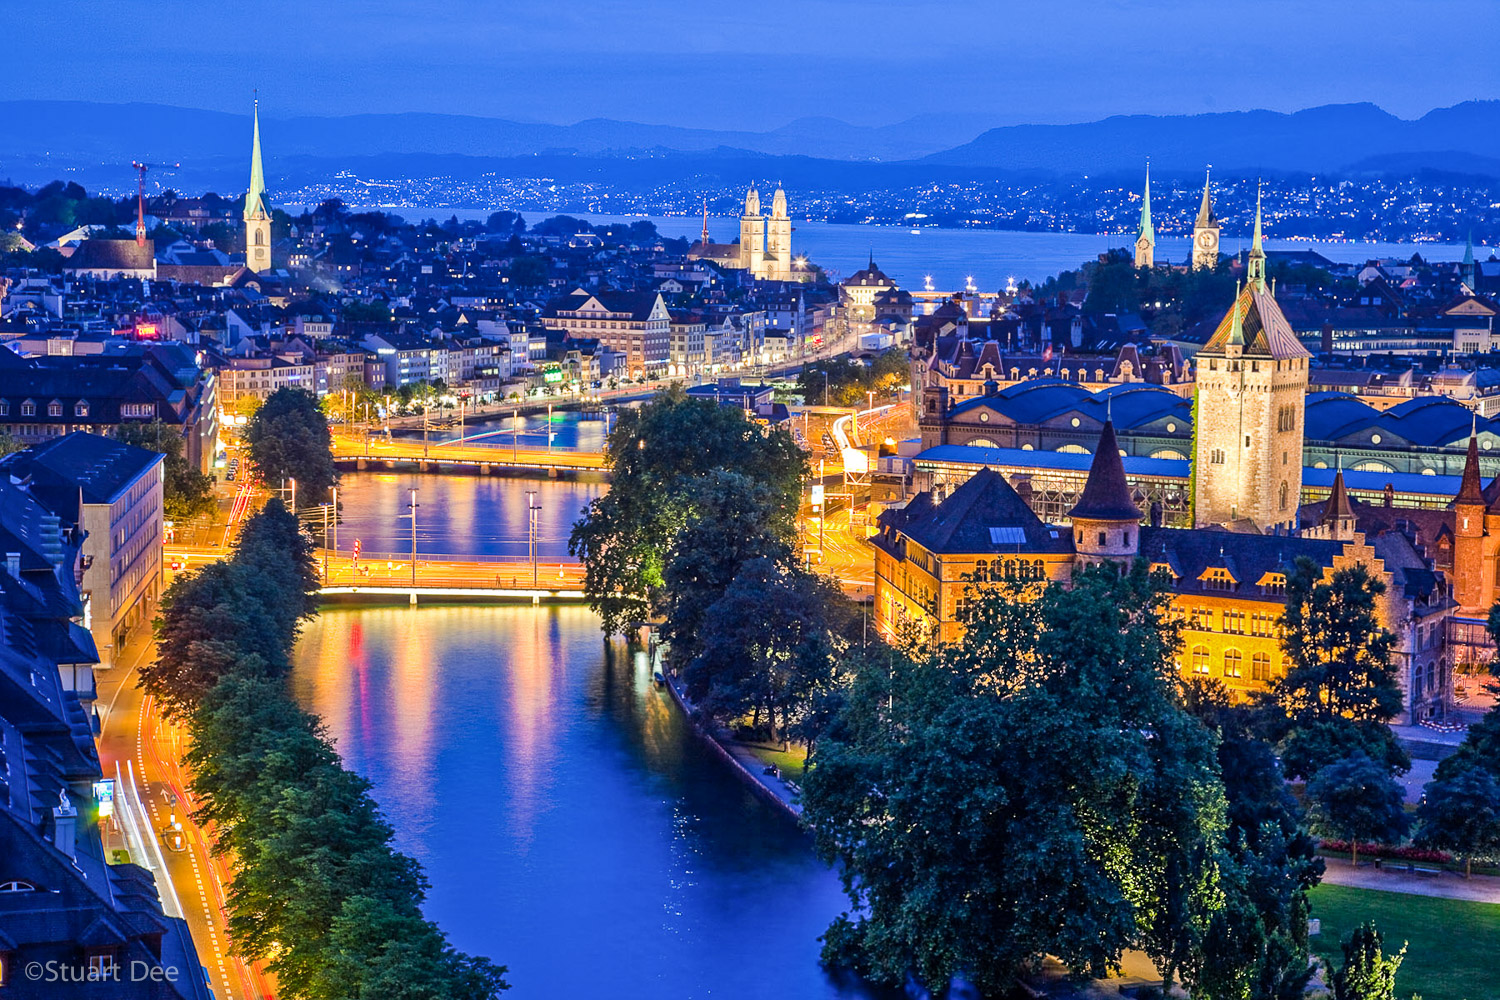 Aerial view of city skyline at dusk/night, Zurich, Switzerland. This view shows the Limmat River and Lake Zurich, and the spires of the most prominent churches. Zurich is the largest city in Switzerland, and is its commercial, banking, and cultural center.